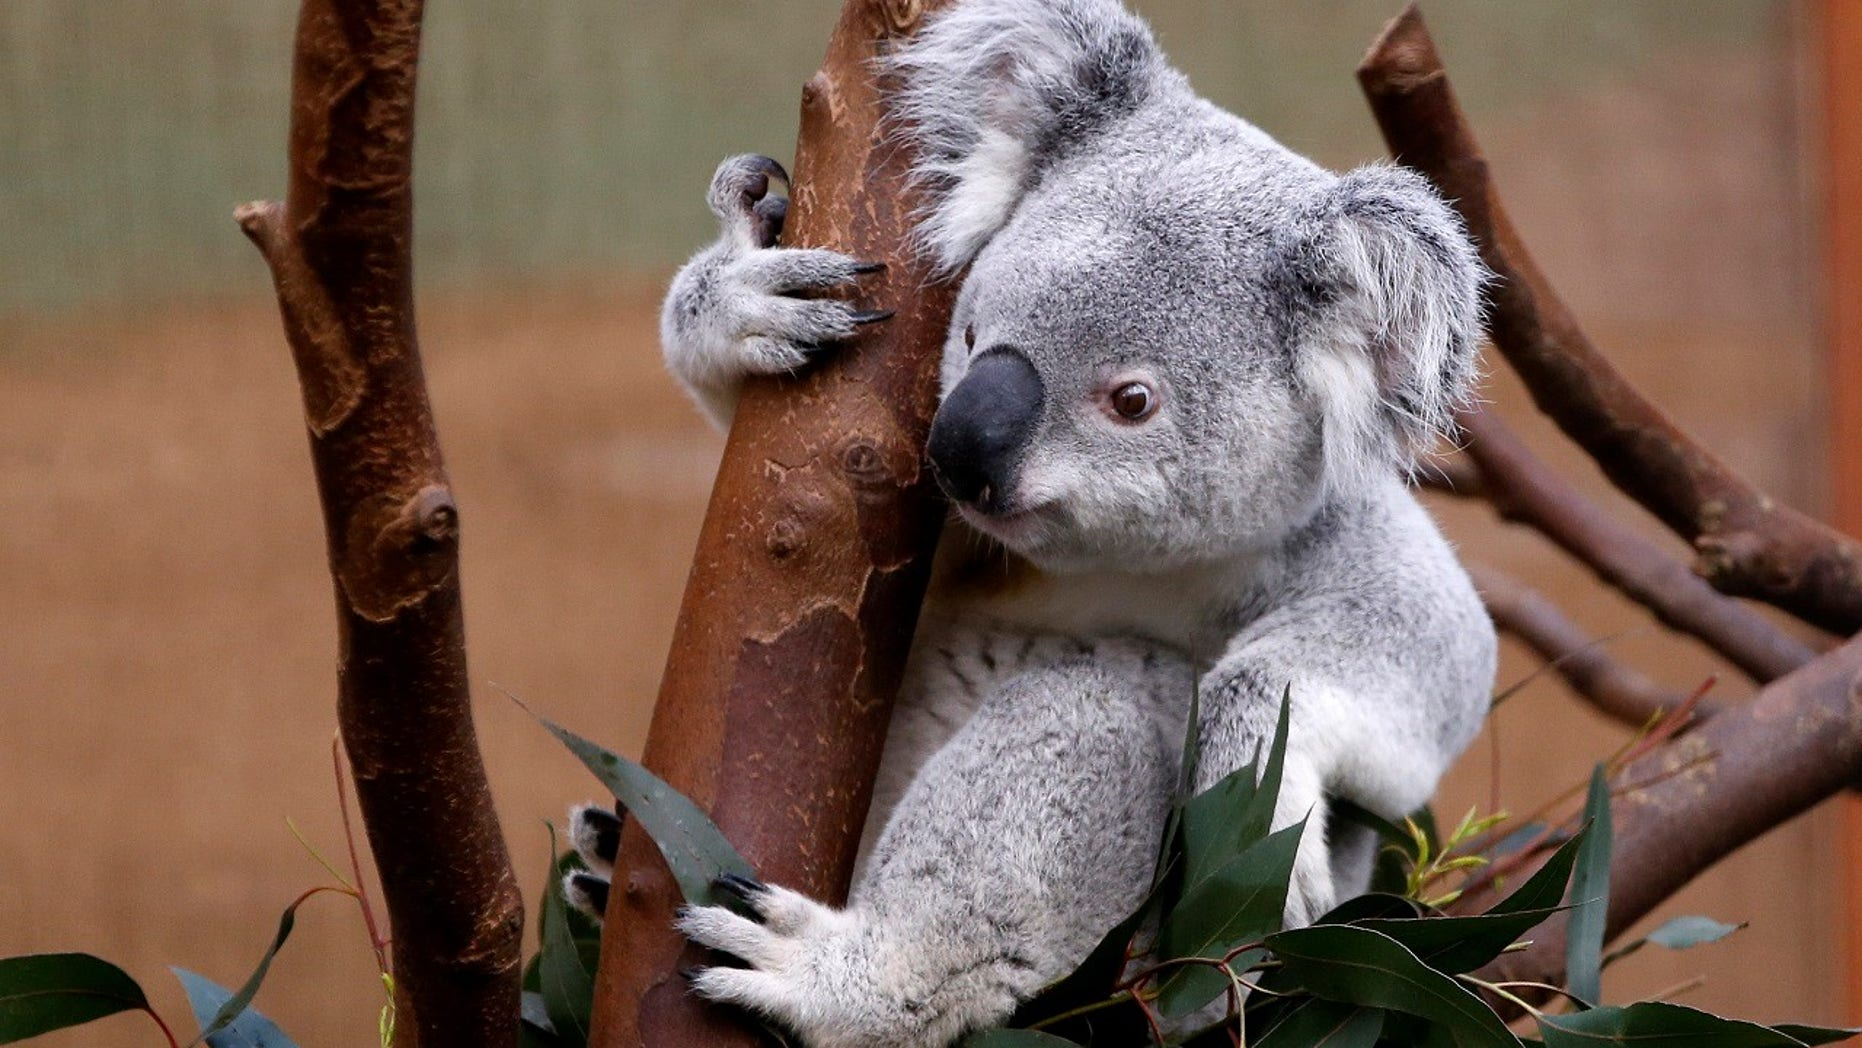 """A koala (not pictured) was found """"cruelly attached"""" to a wooden post at an Australian park on Wednesday, leading police to investigate who killed the marsupial."""